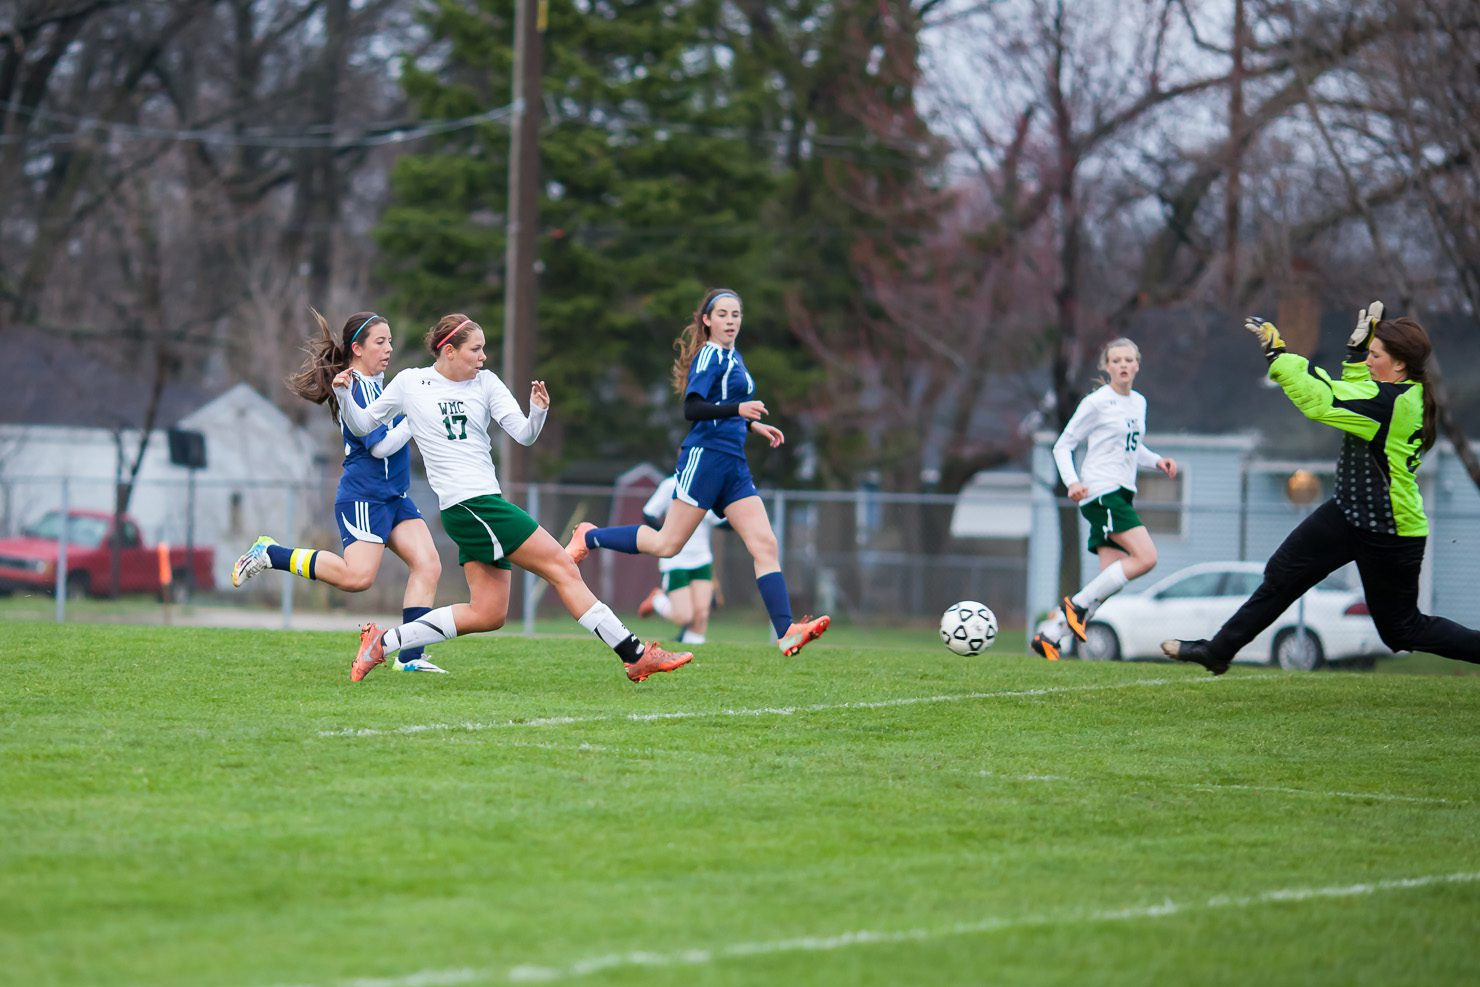 Five-goal second half lifts Western Michigan Christian in girls soccer